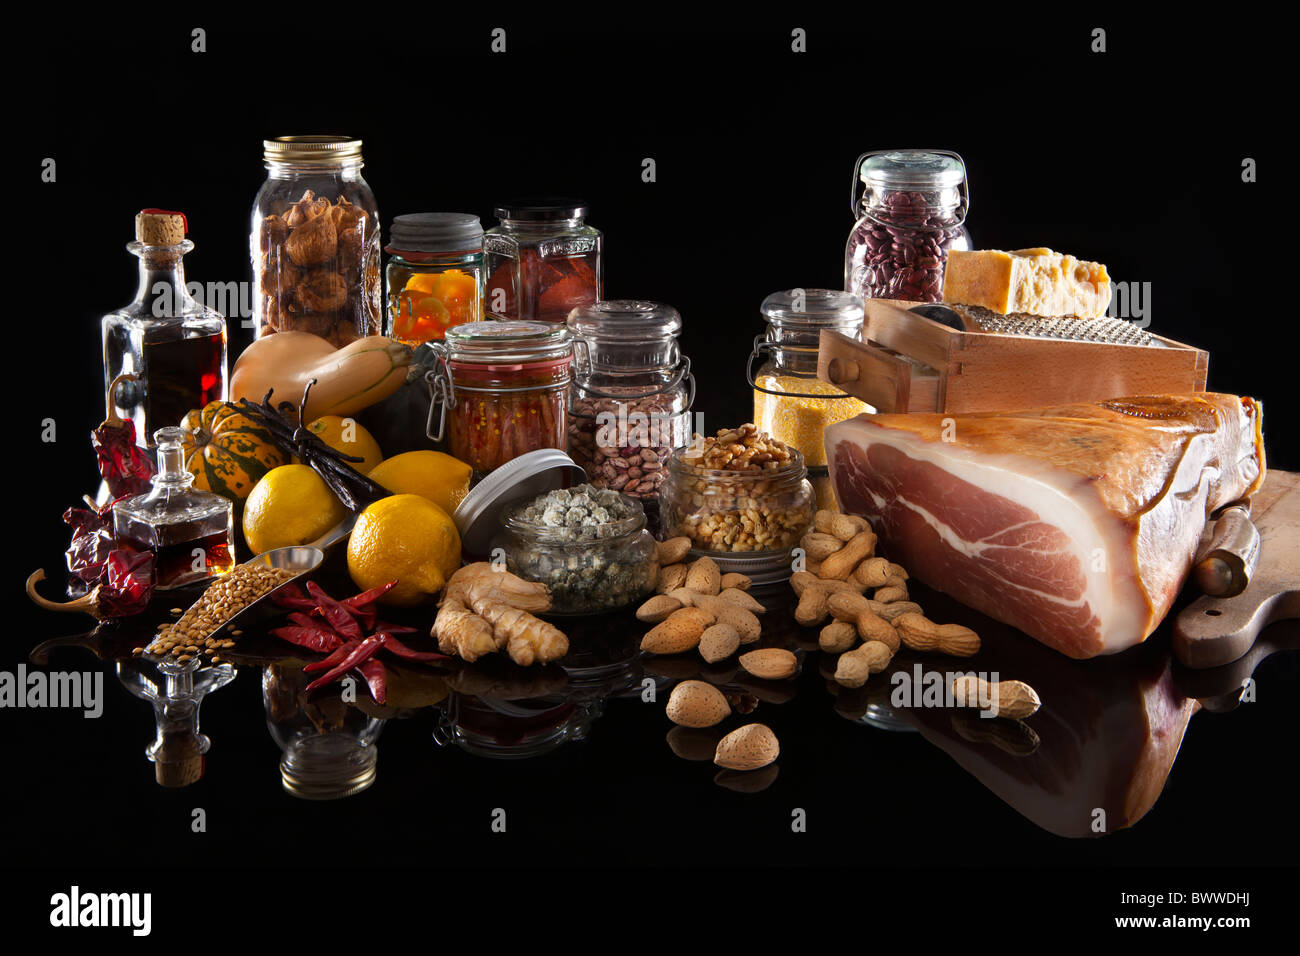 A variety of pantry food in various glass jars and bottles on black background - Stock Image